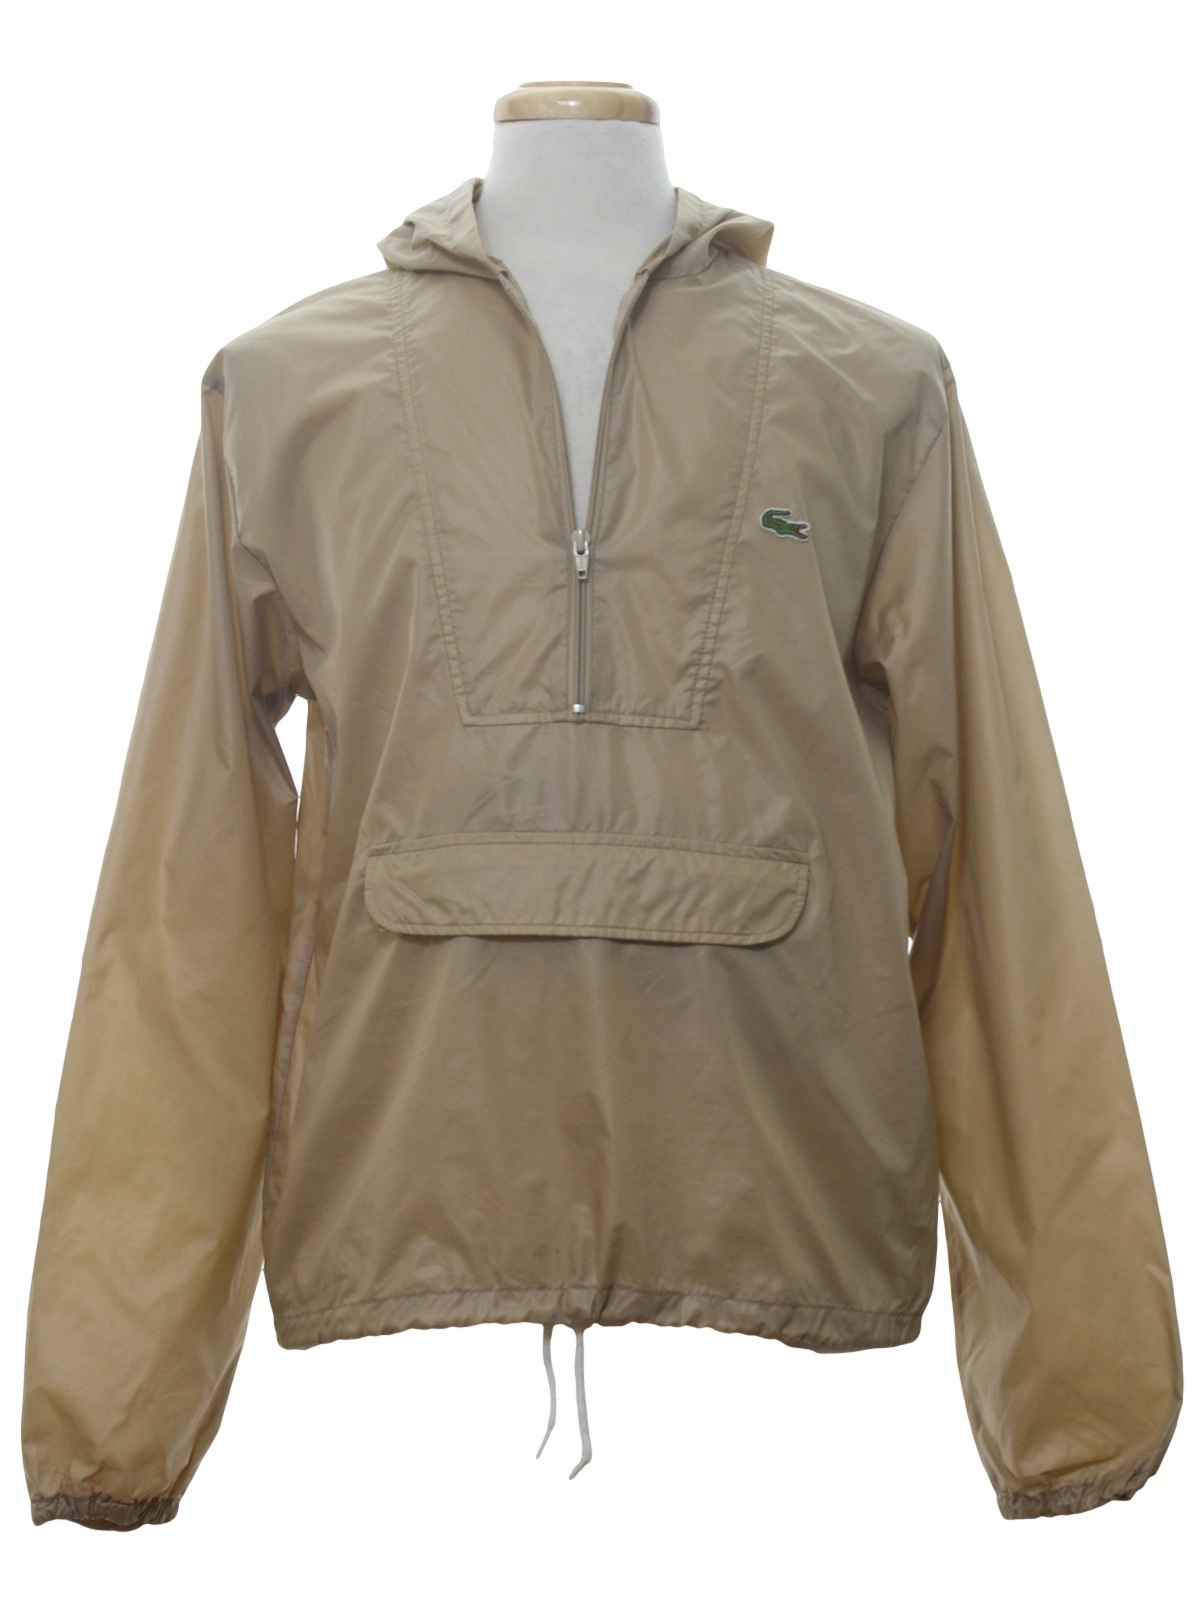 80s Retro Jacket: 80s -Lacoste- Mens tan background, longsleeve ...